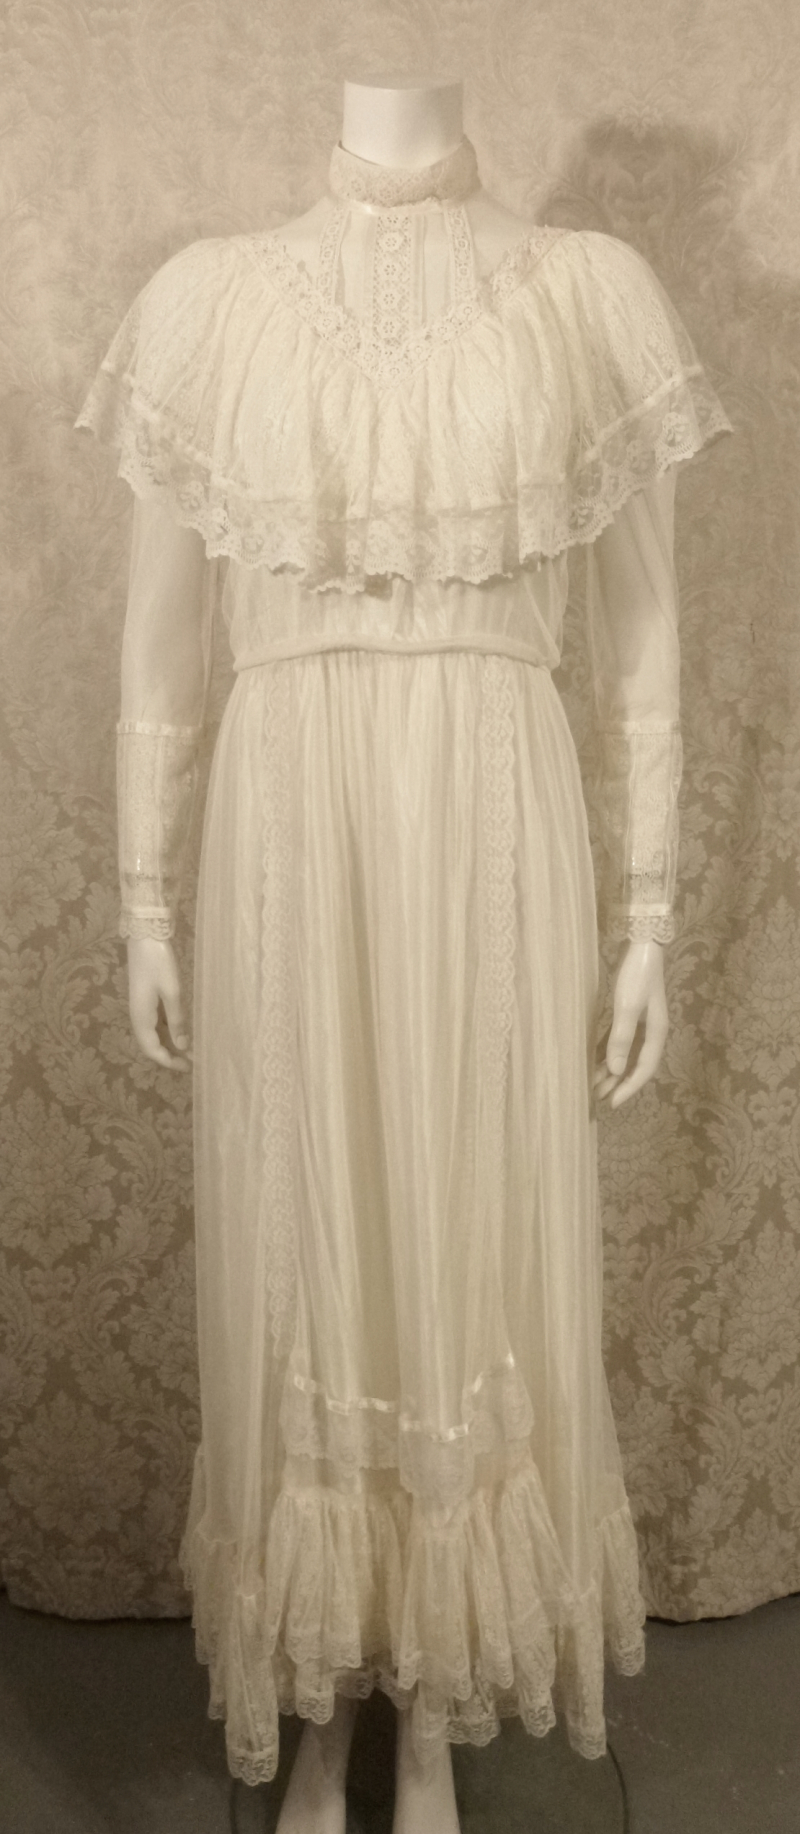 Vintage 1970's Gunne Sax by Jessica McClintock High Neck Ivory Lace Victorian Style Lawn Party Wedding Dress (6)